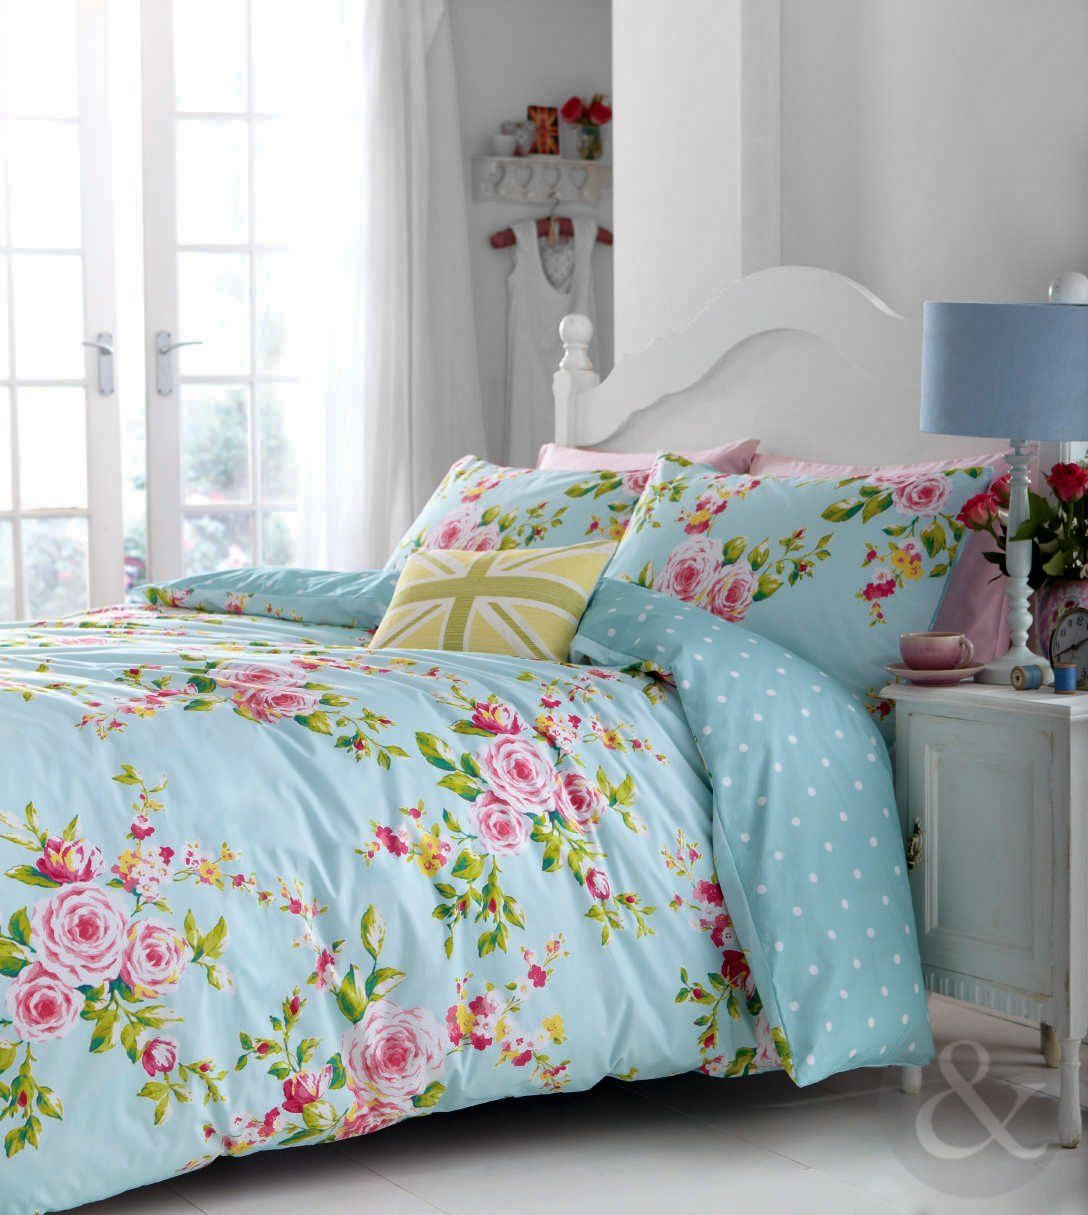 duvet cover tlc pk flower buy set nostalgic nostelgic